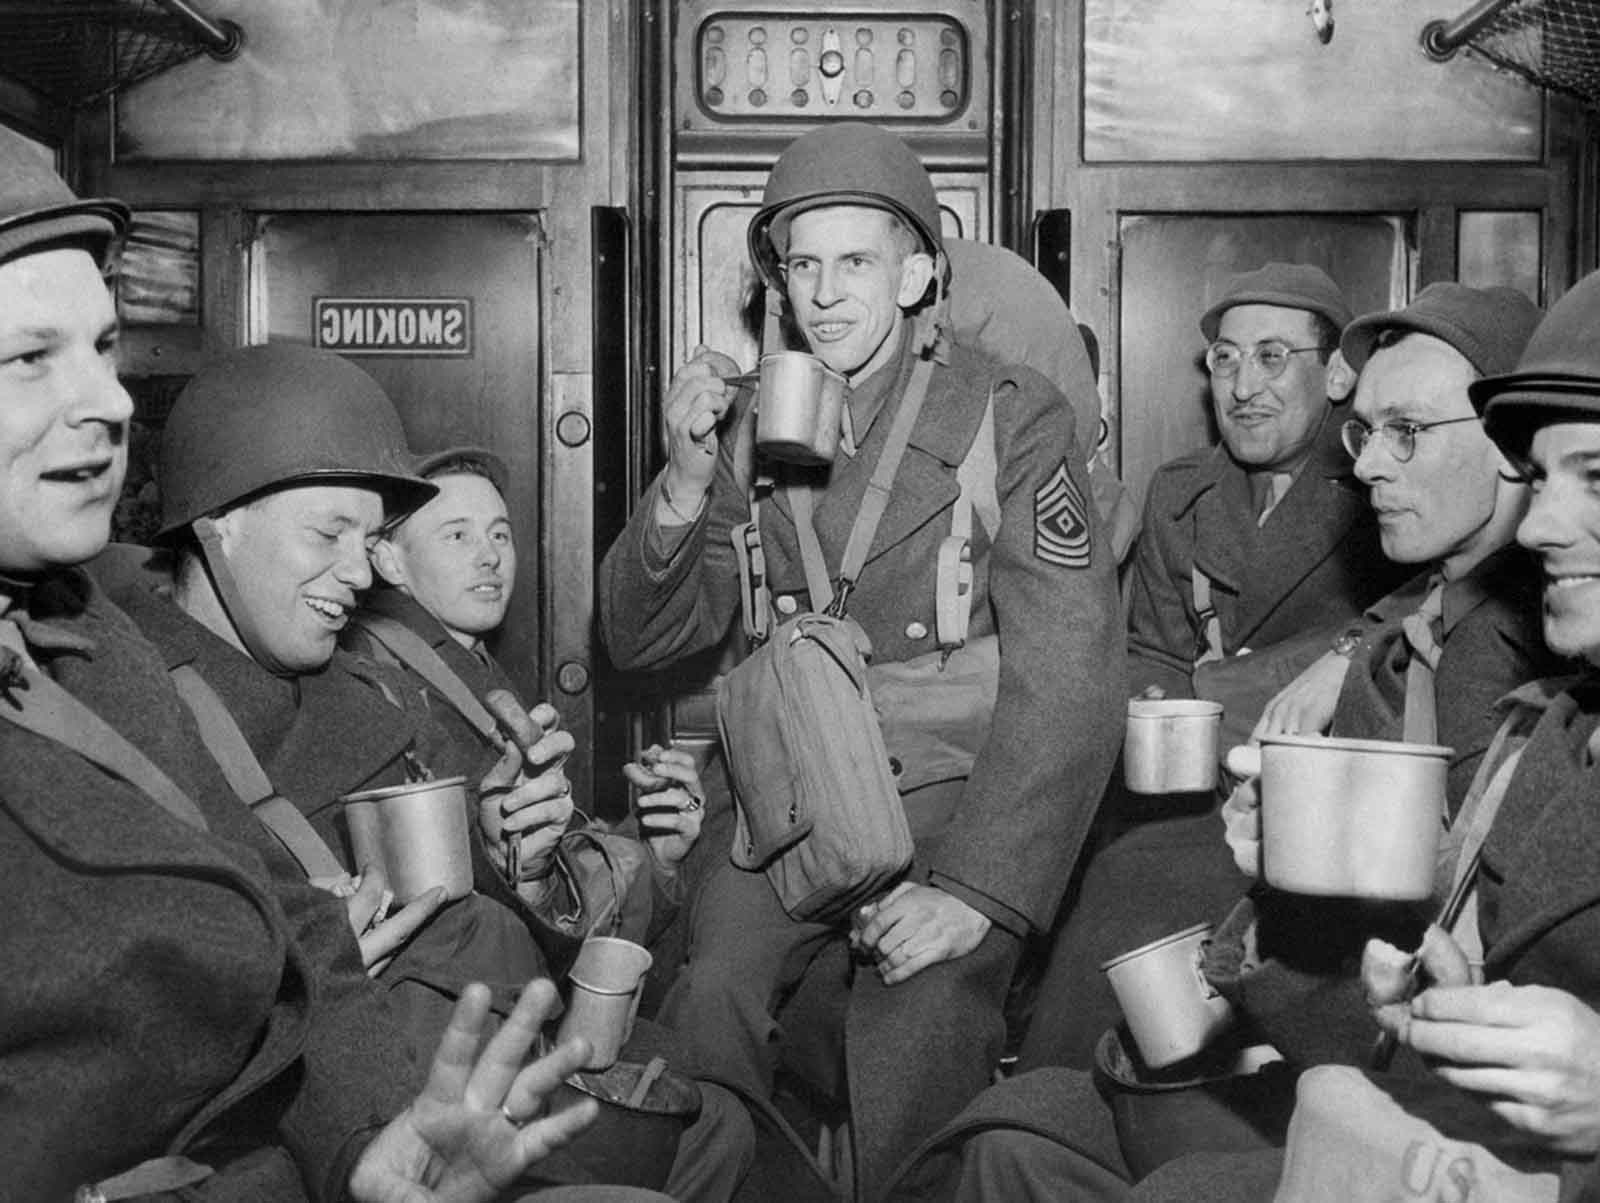 This group of soldiers who debarked from a transport drink from mugs of coffee and munch doughnuts on a troop train en route to their station in England, March 15, 1944.